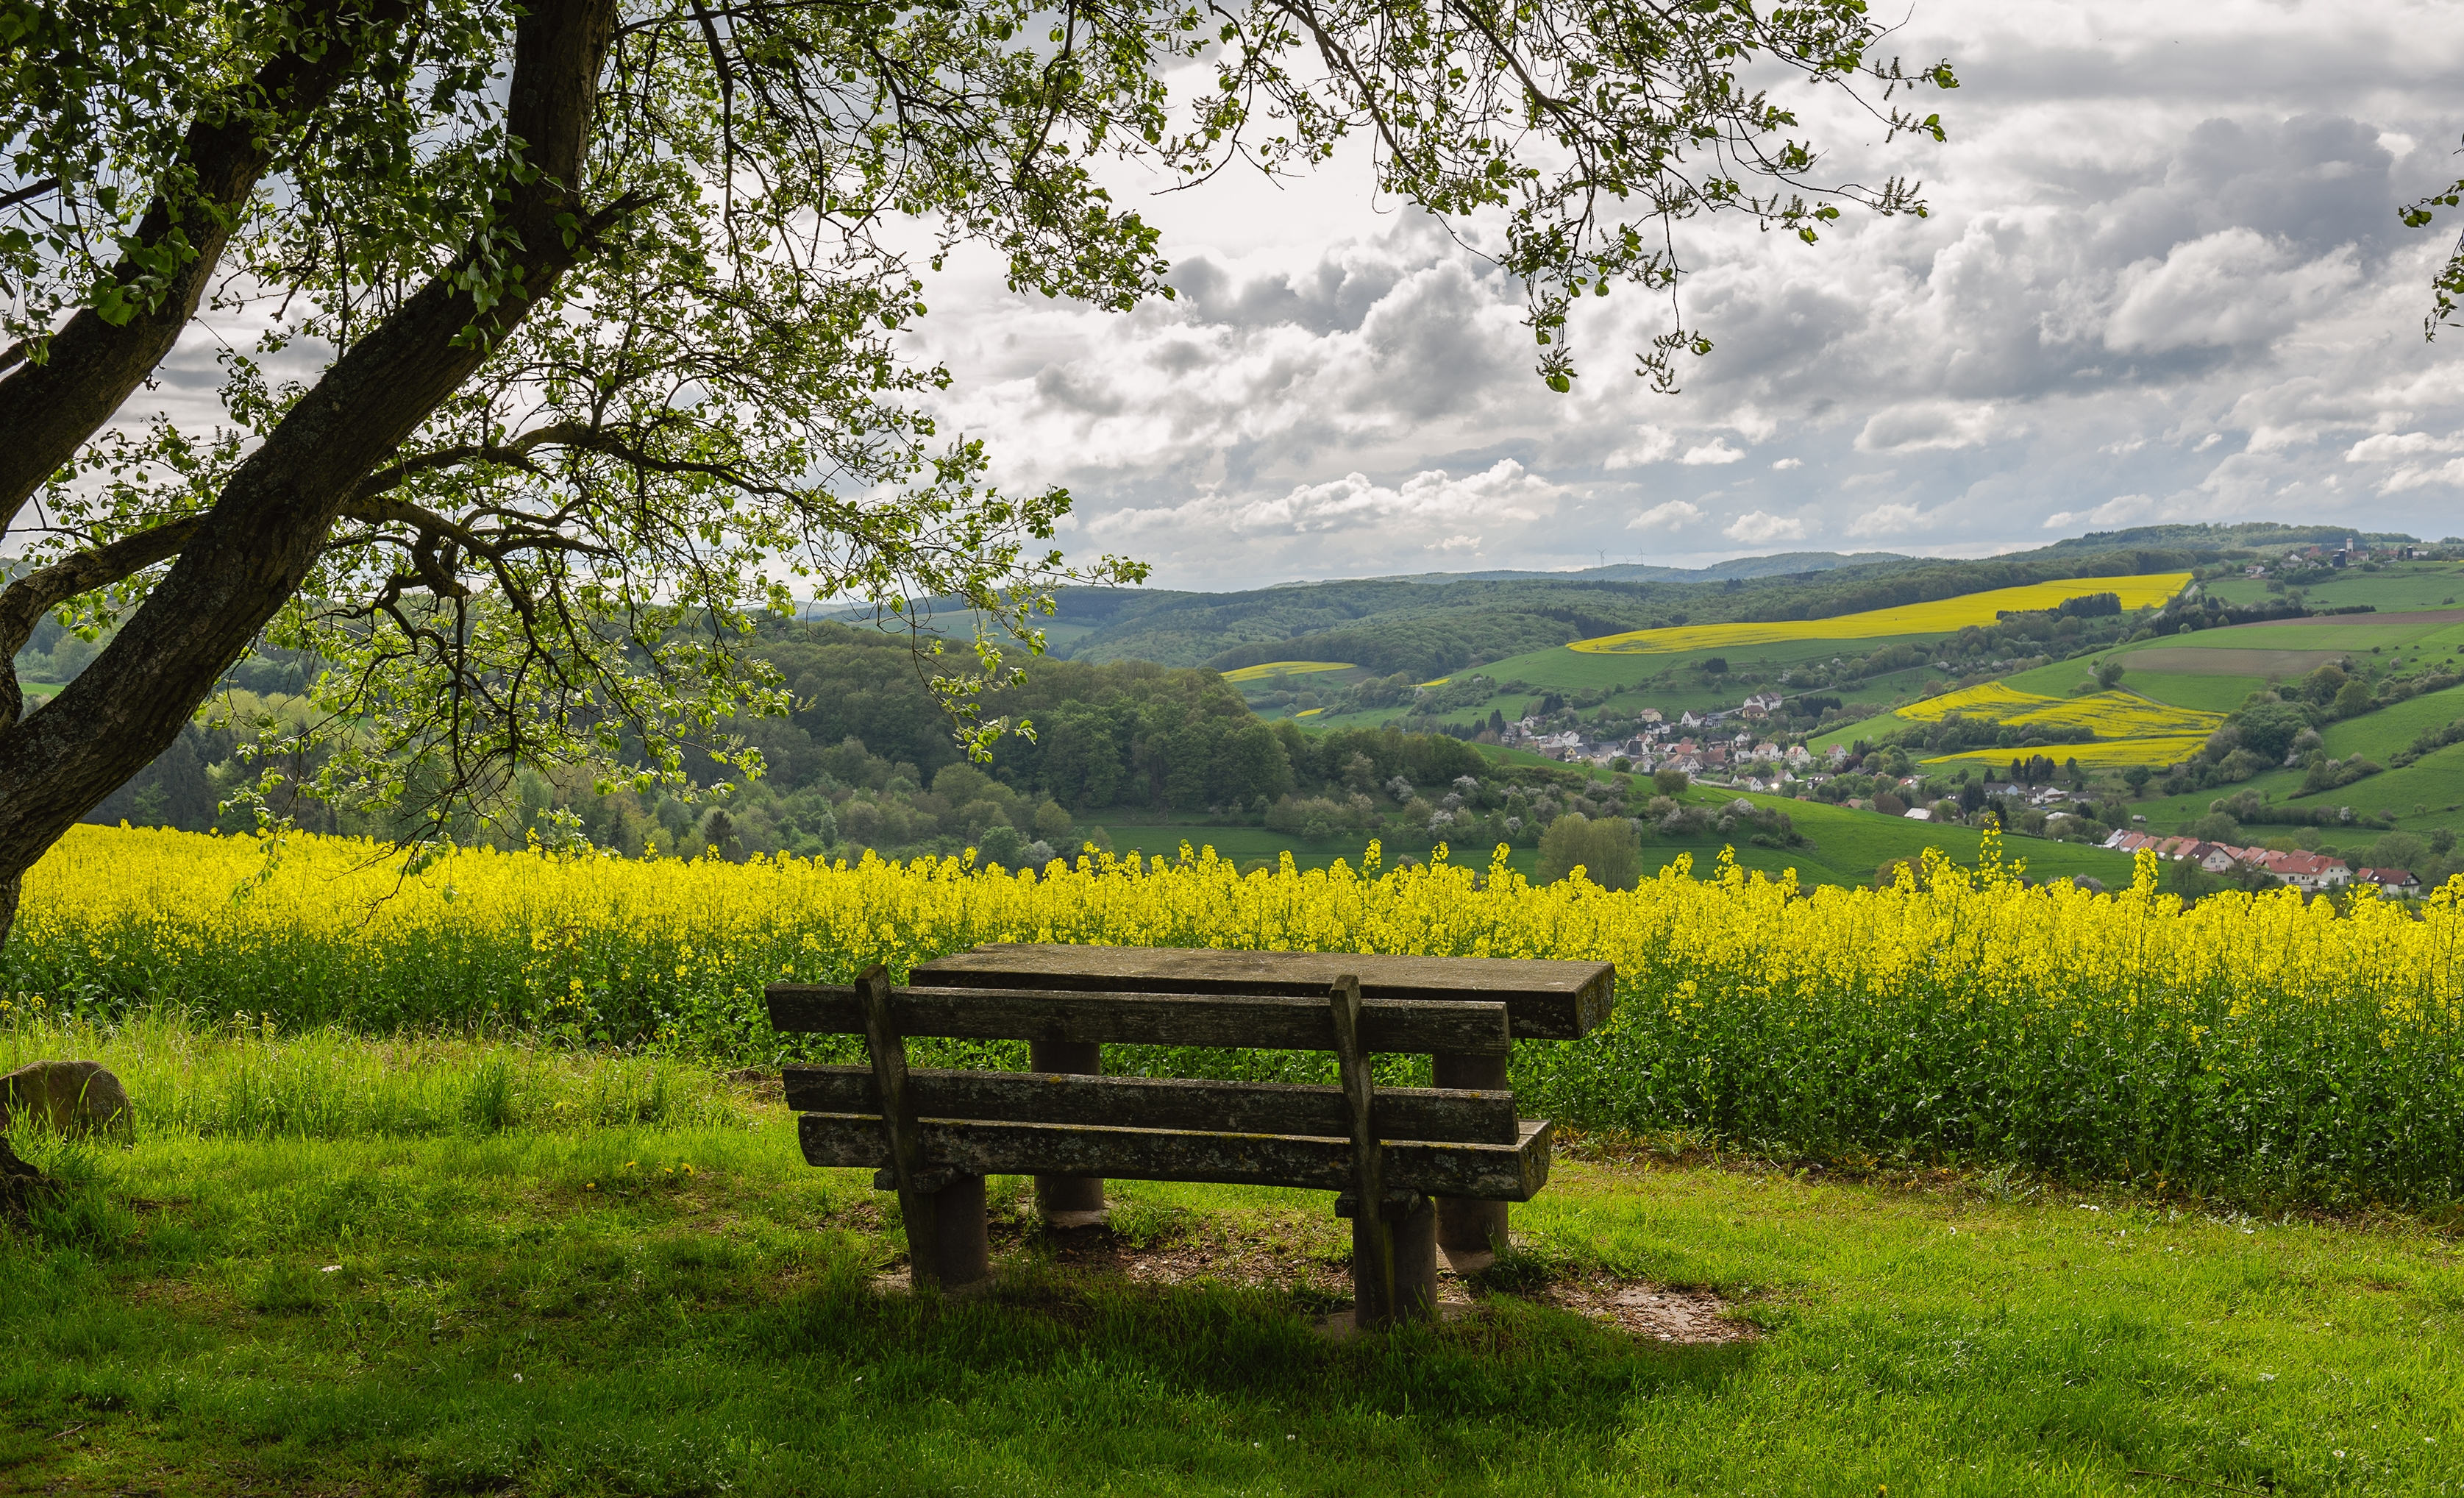 118556 download wallpaper Bench, Nature, Landscape screensavers and pictures for free